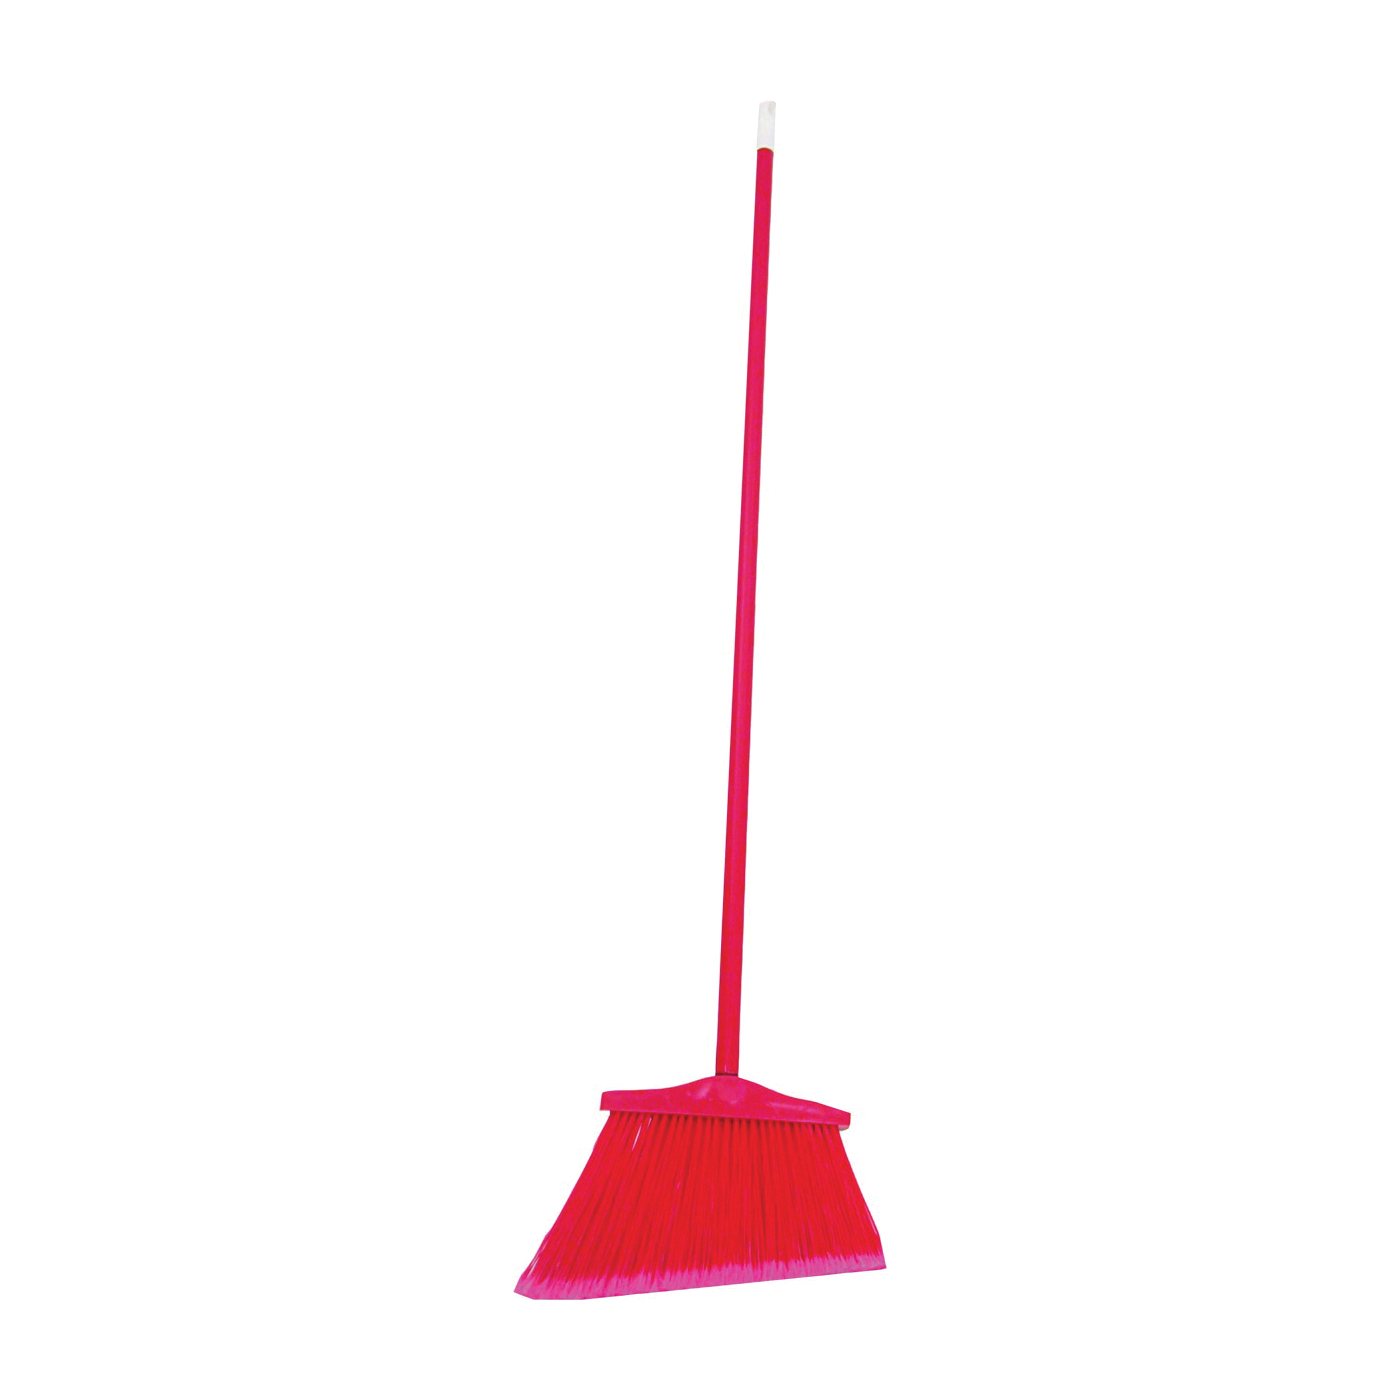 Picture of BIRDWELL 316-6 Corner Cleaner, Polypropylene Bristle, Assorted Bristle, 56 in L, Metal Handle